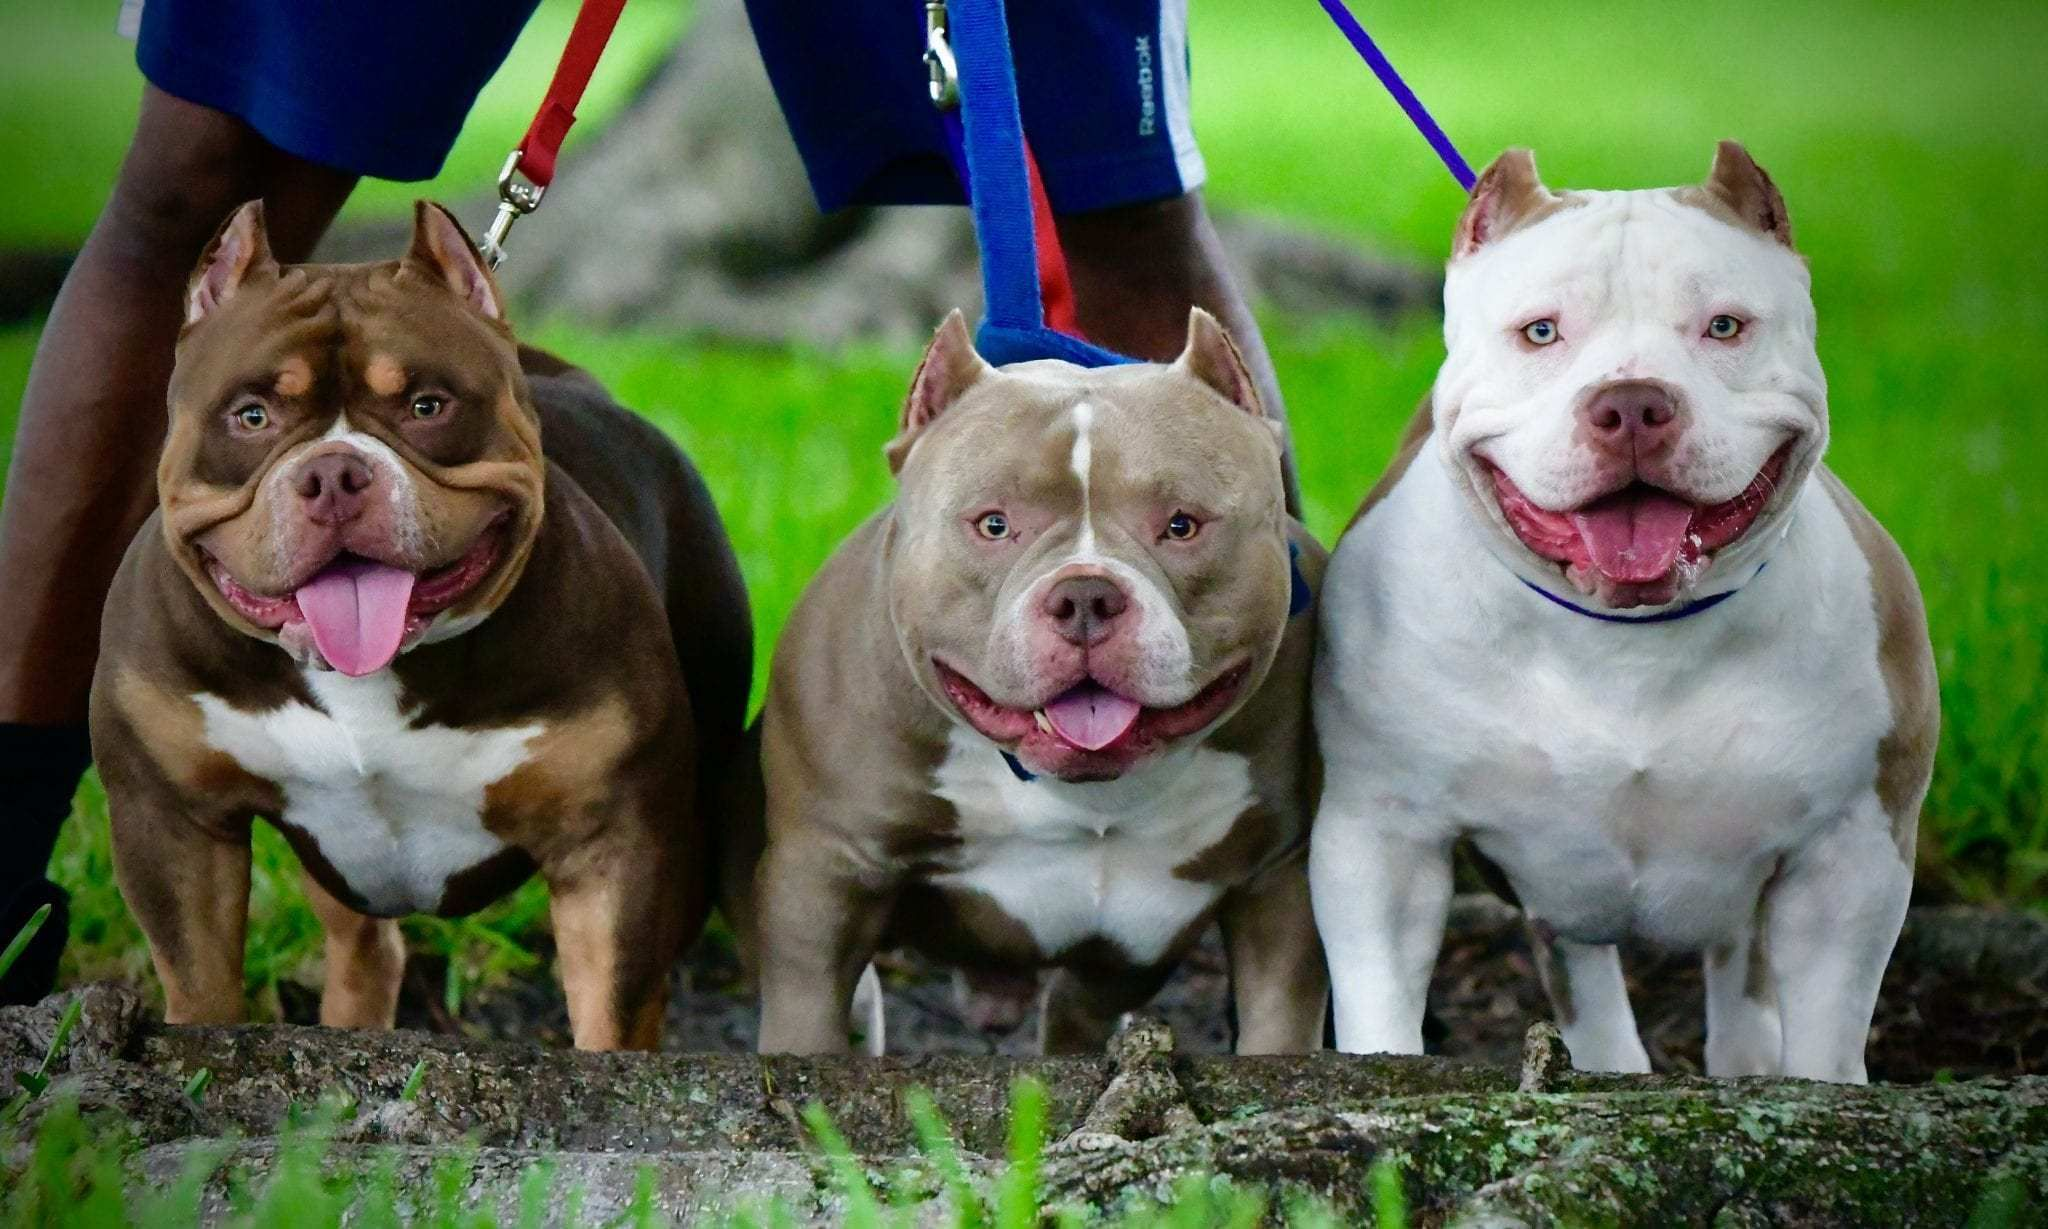 Venomline Pocket American Bully Breeders July 2020 Venomline Top Pocket American Bully Breeders In 2020 American Bully Pocket Bully Bully Breeds